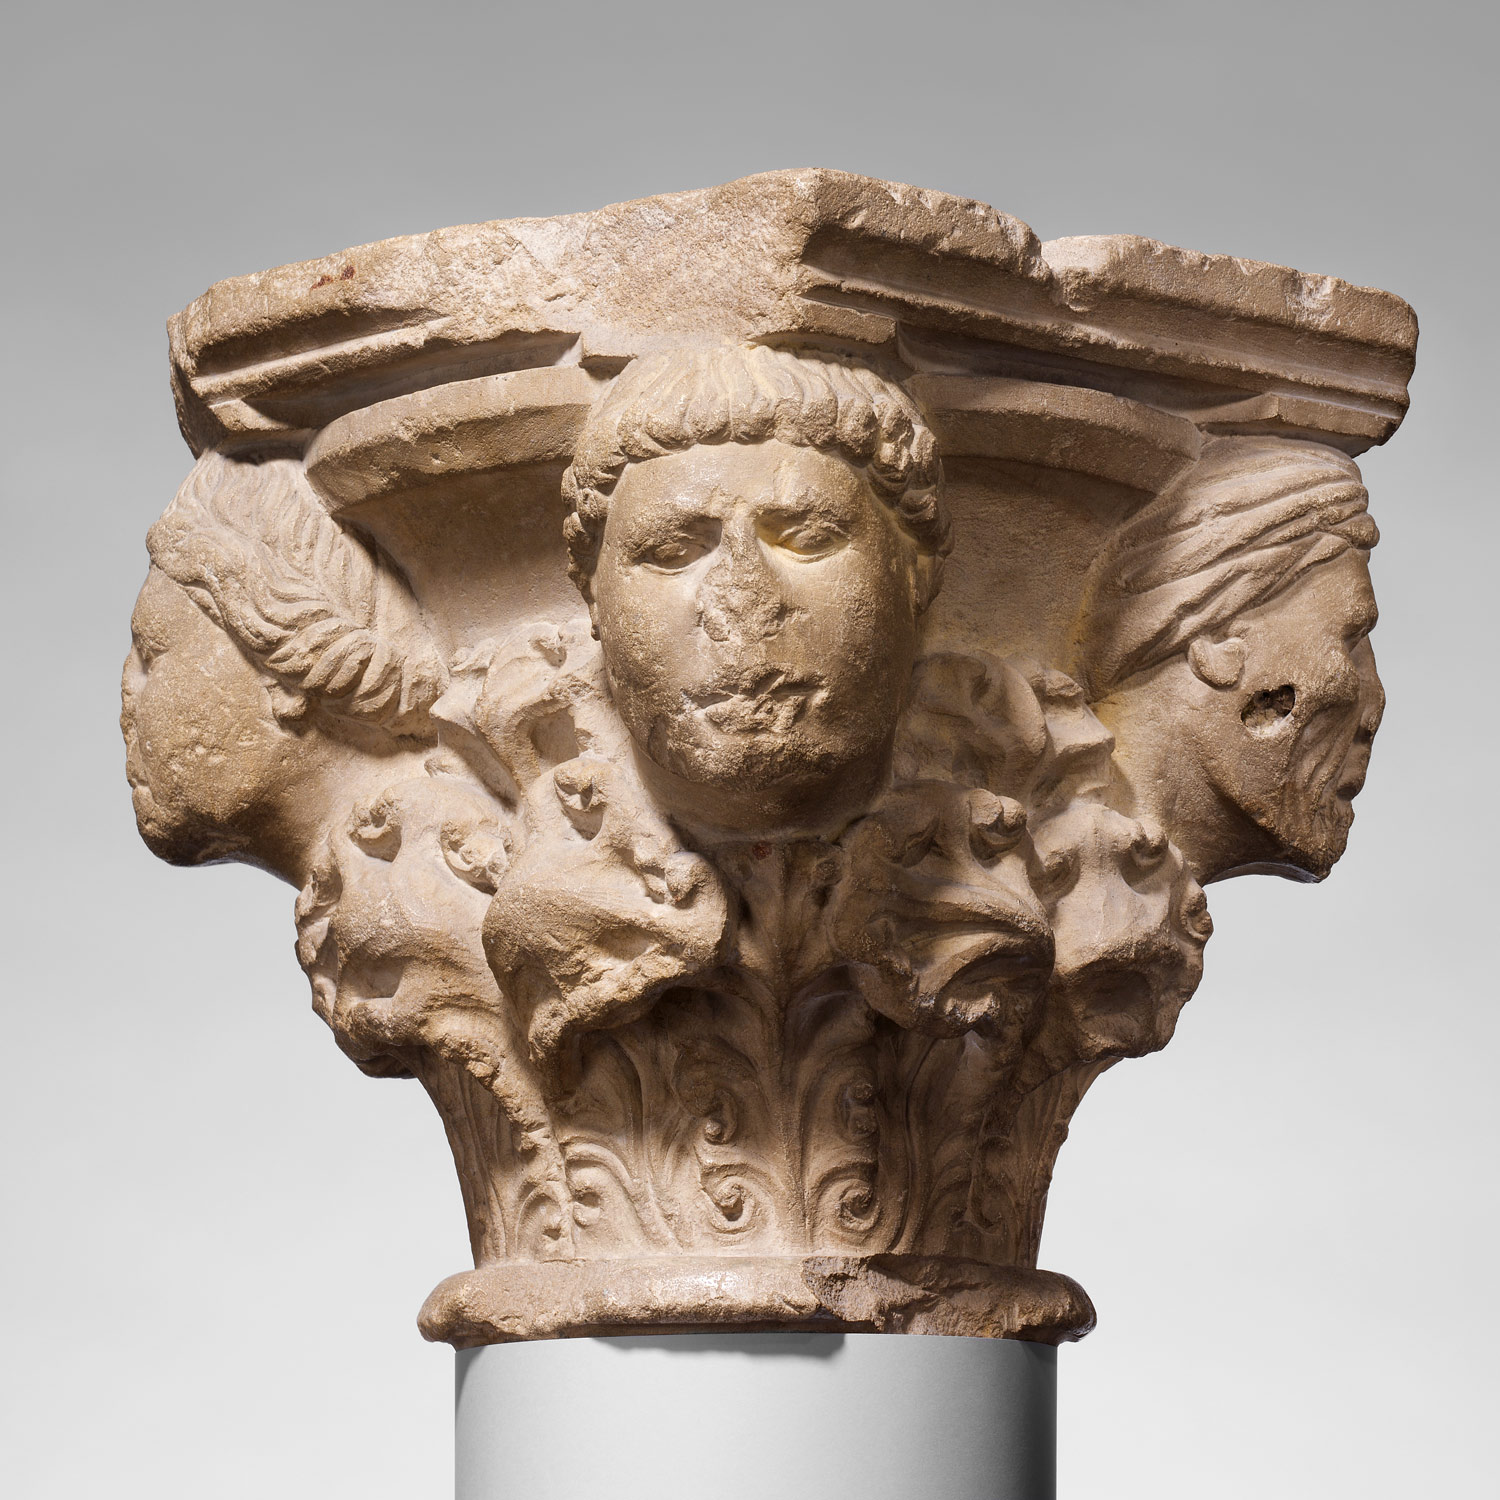 Capital with Four Heads